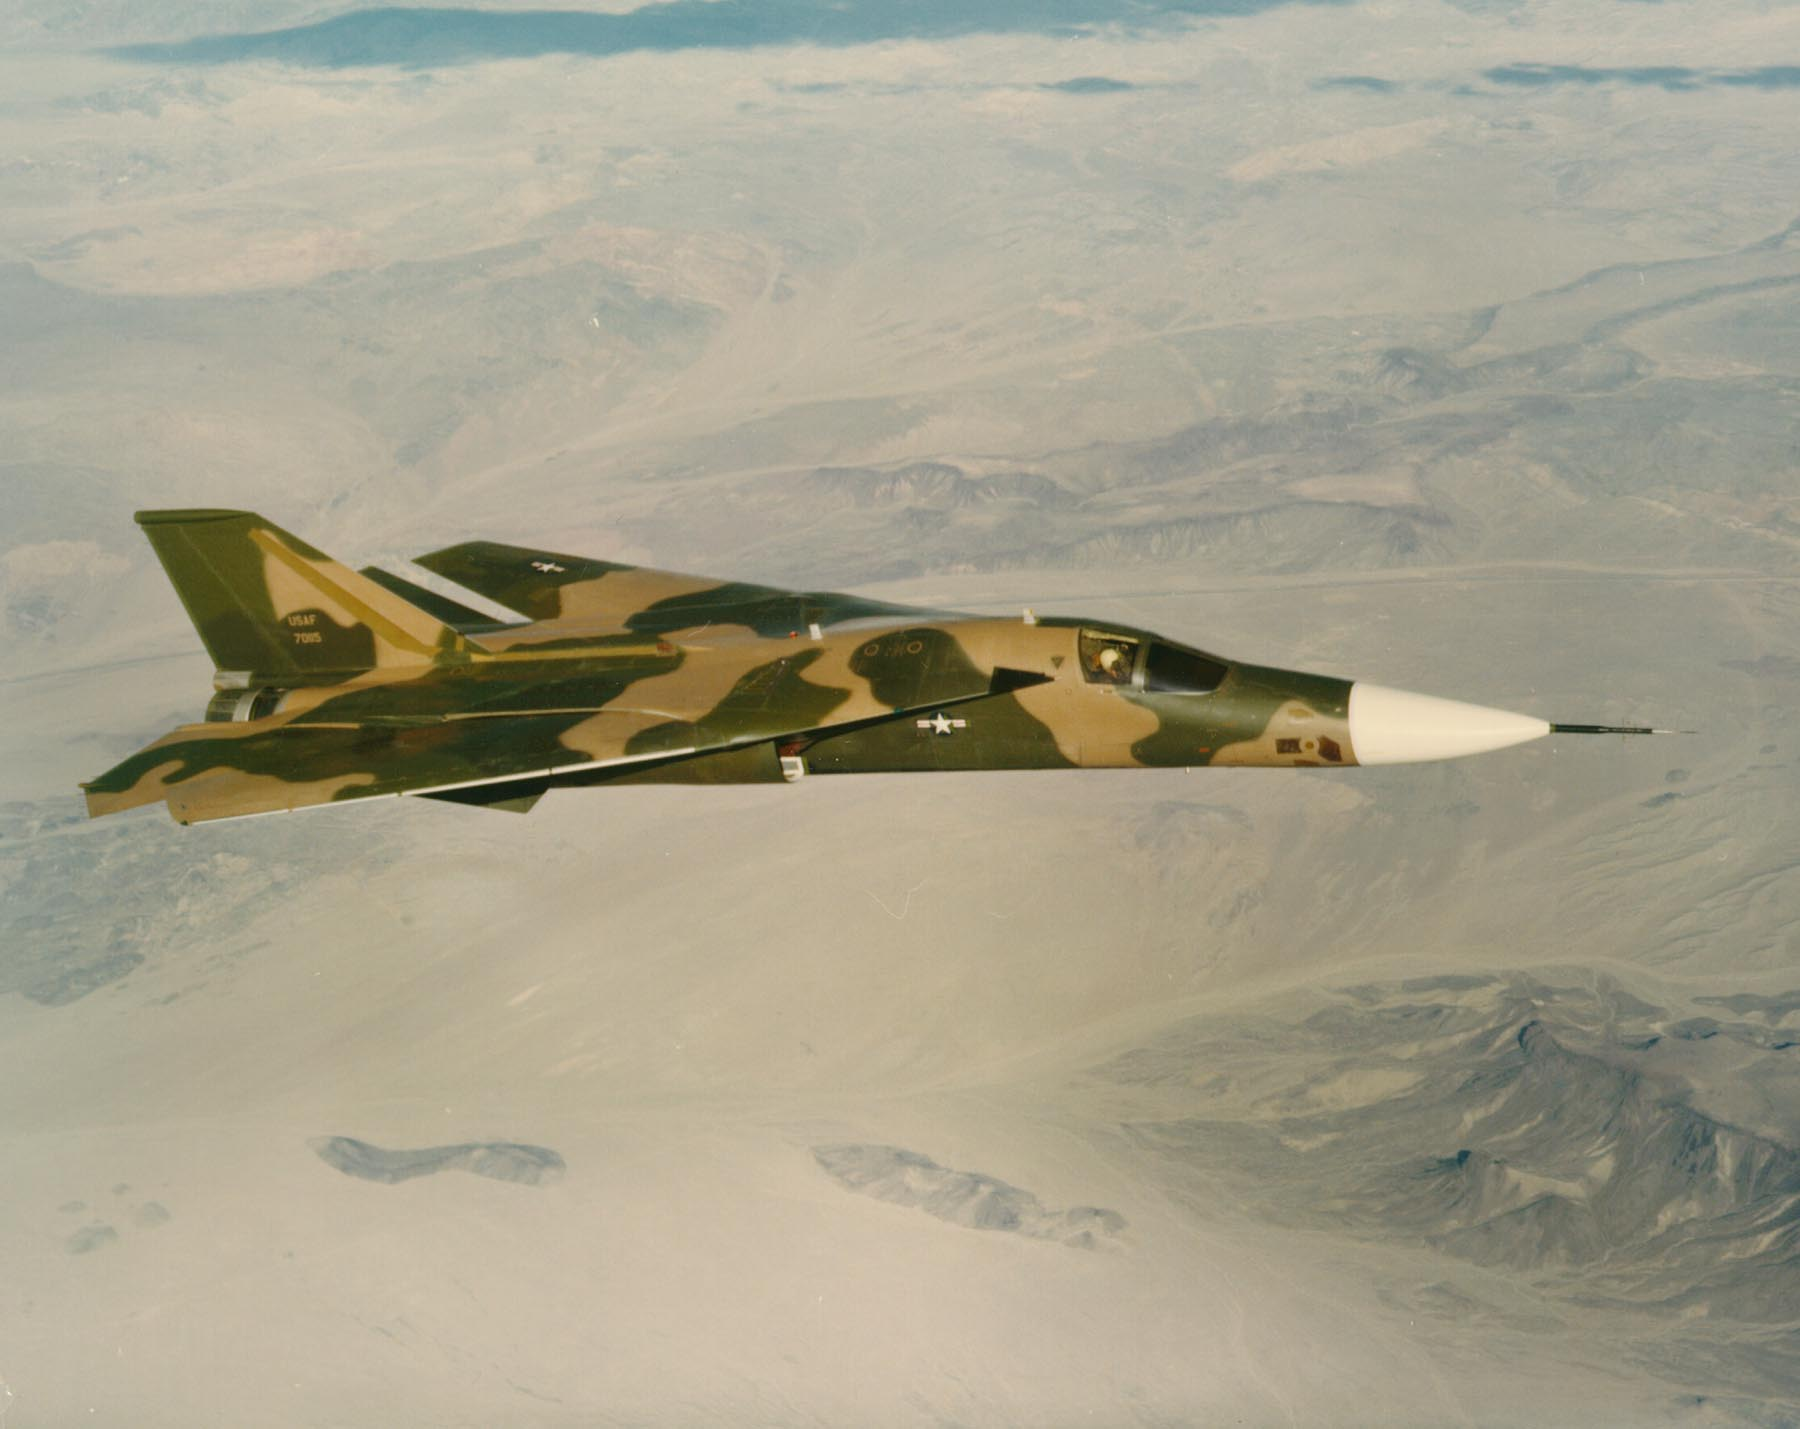 File:F-111 2.jpg - Wikimedia Commons